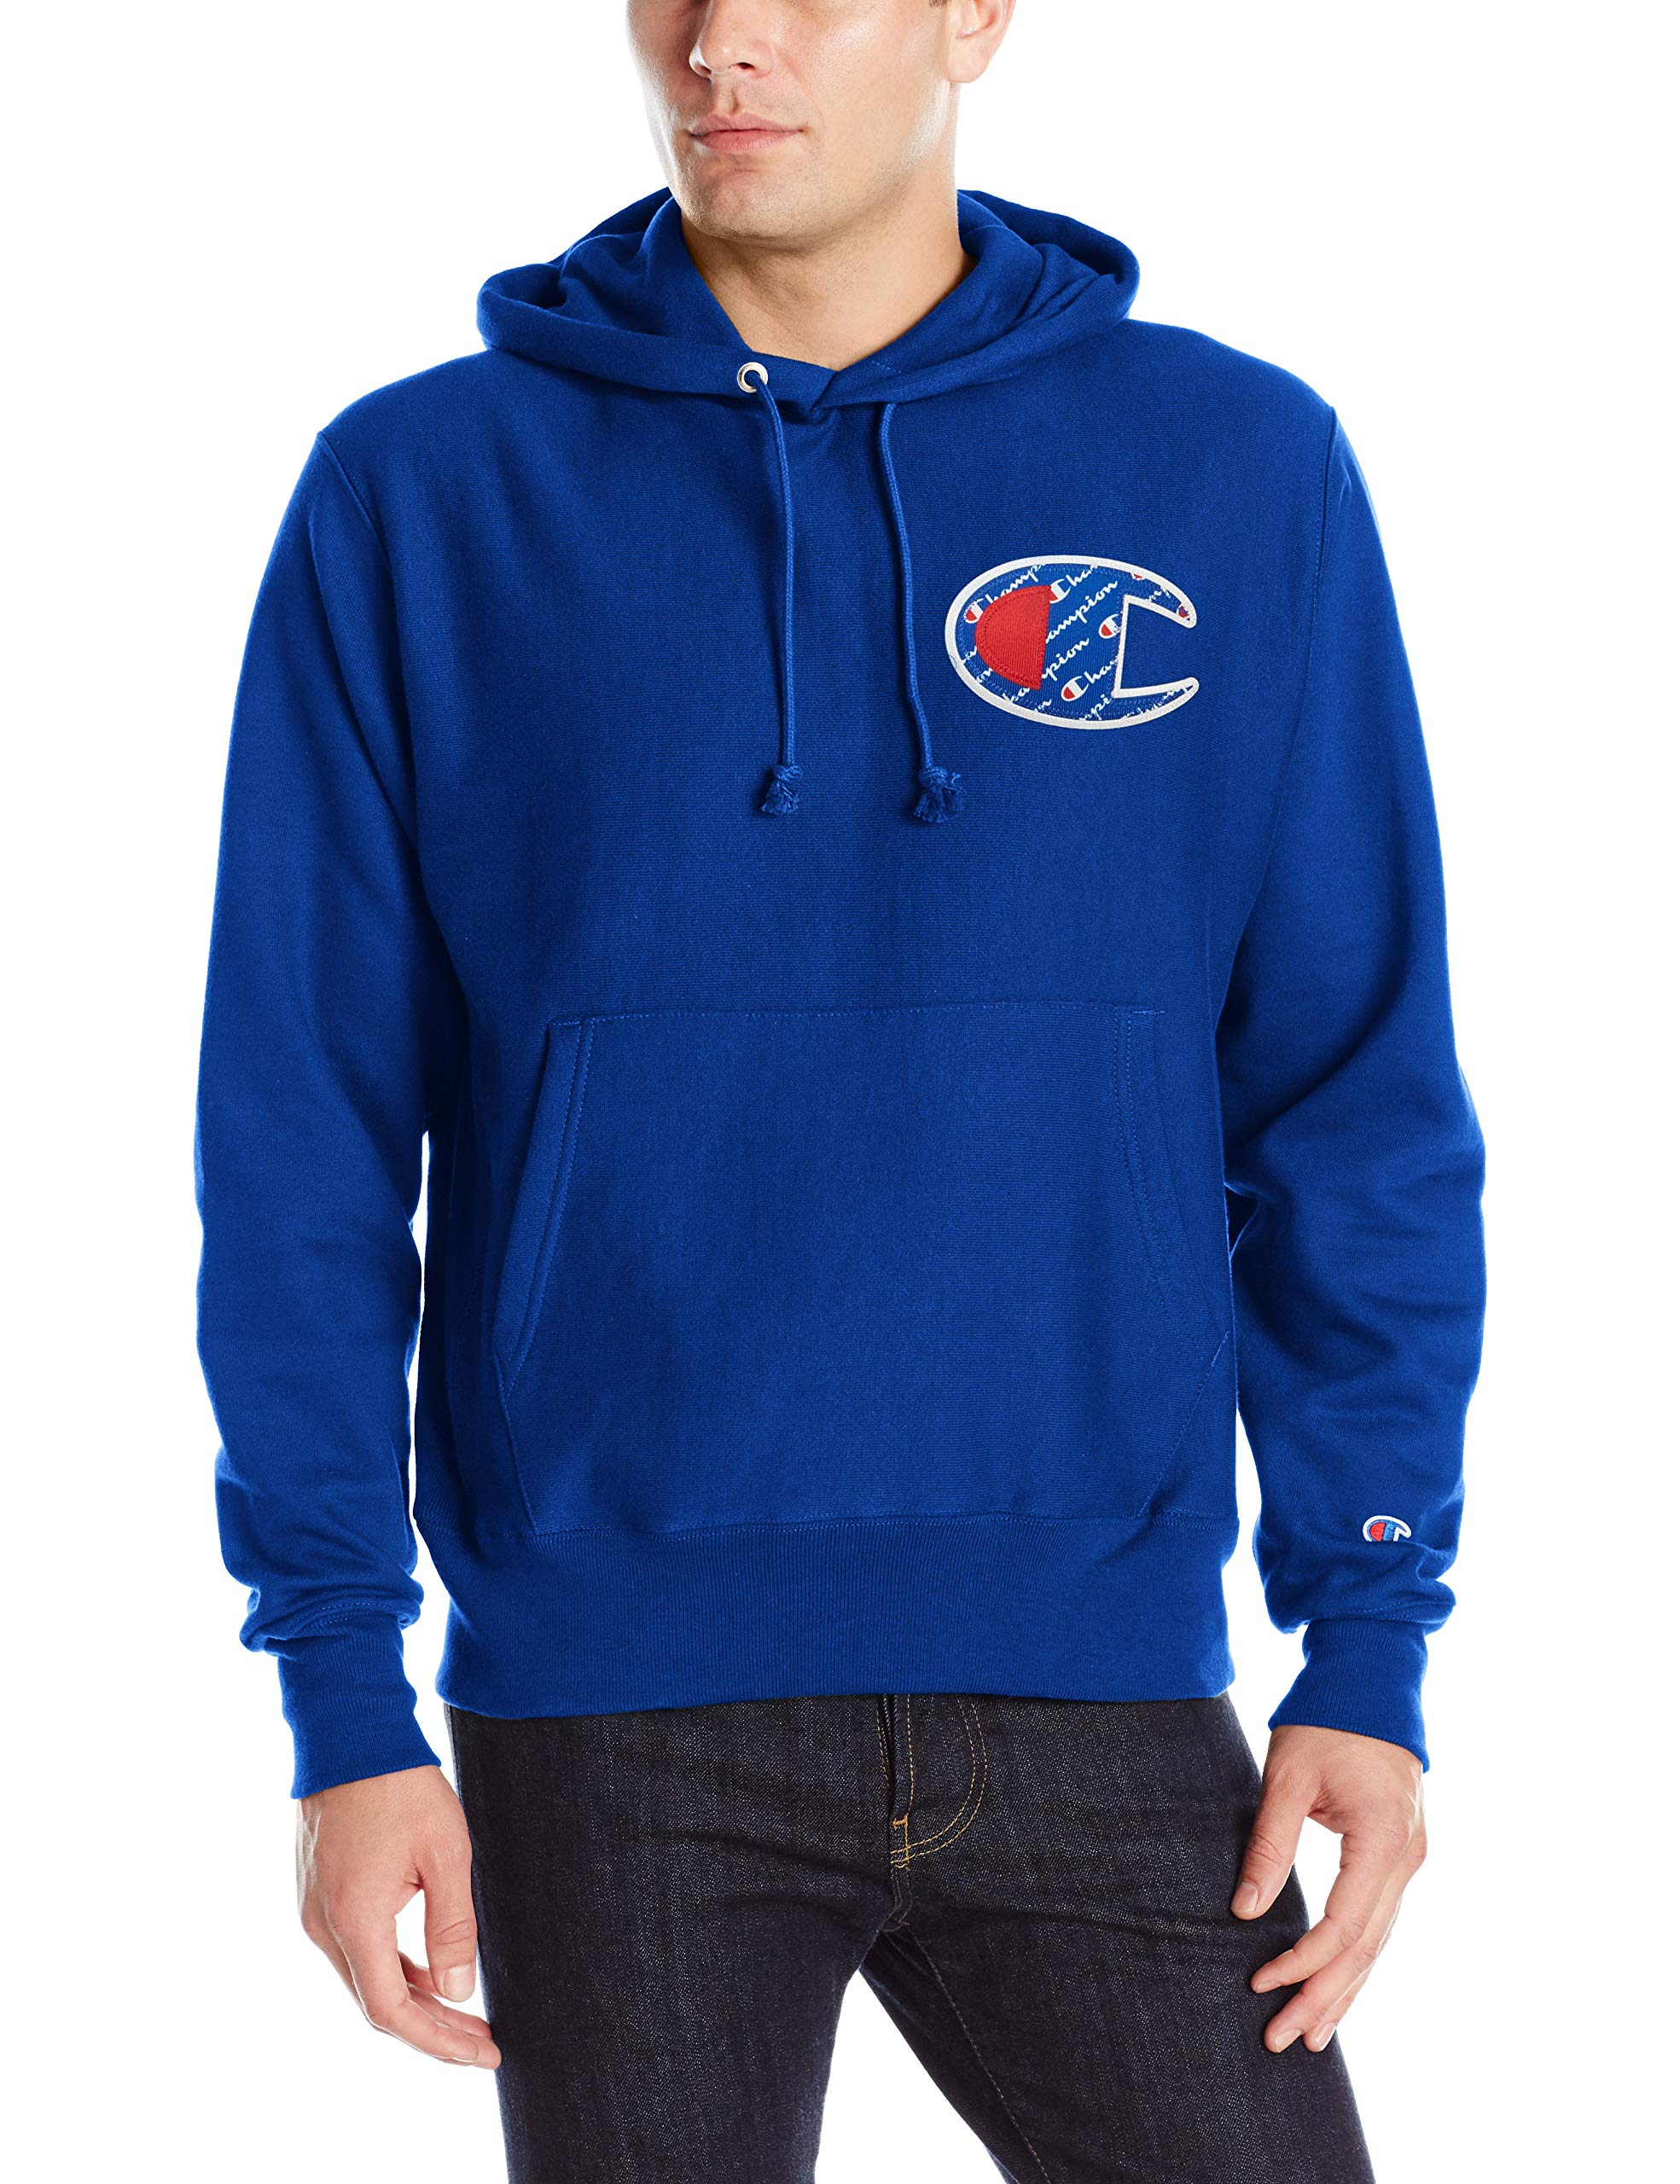 Champion LIFE Men's Reverse Weave Pullover Hoodie, surf The Web/Sublimated c Logo, Large by Champion LIFE